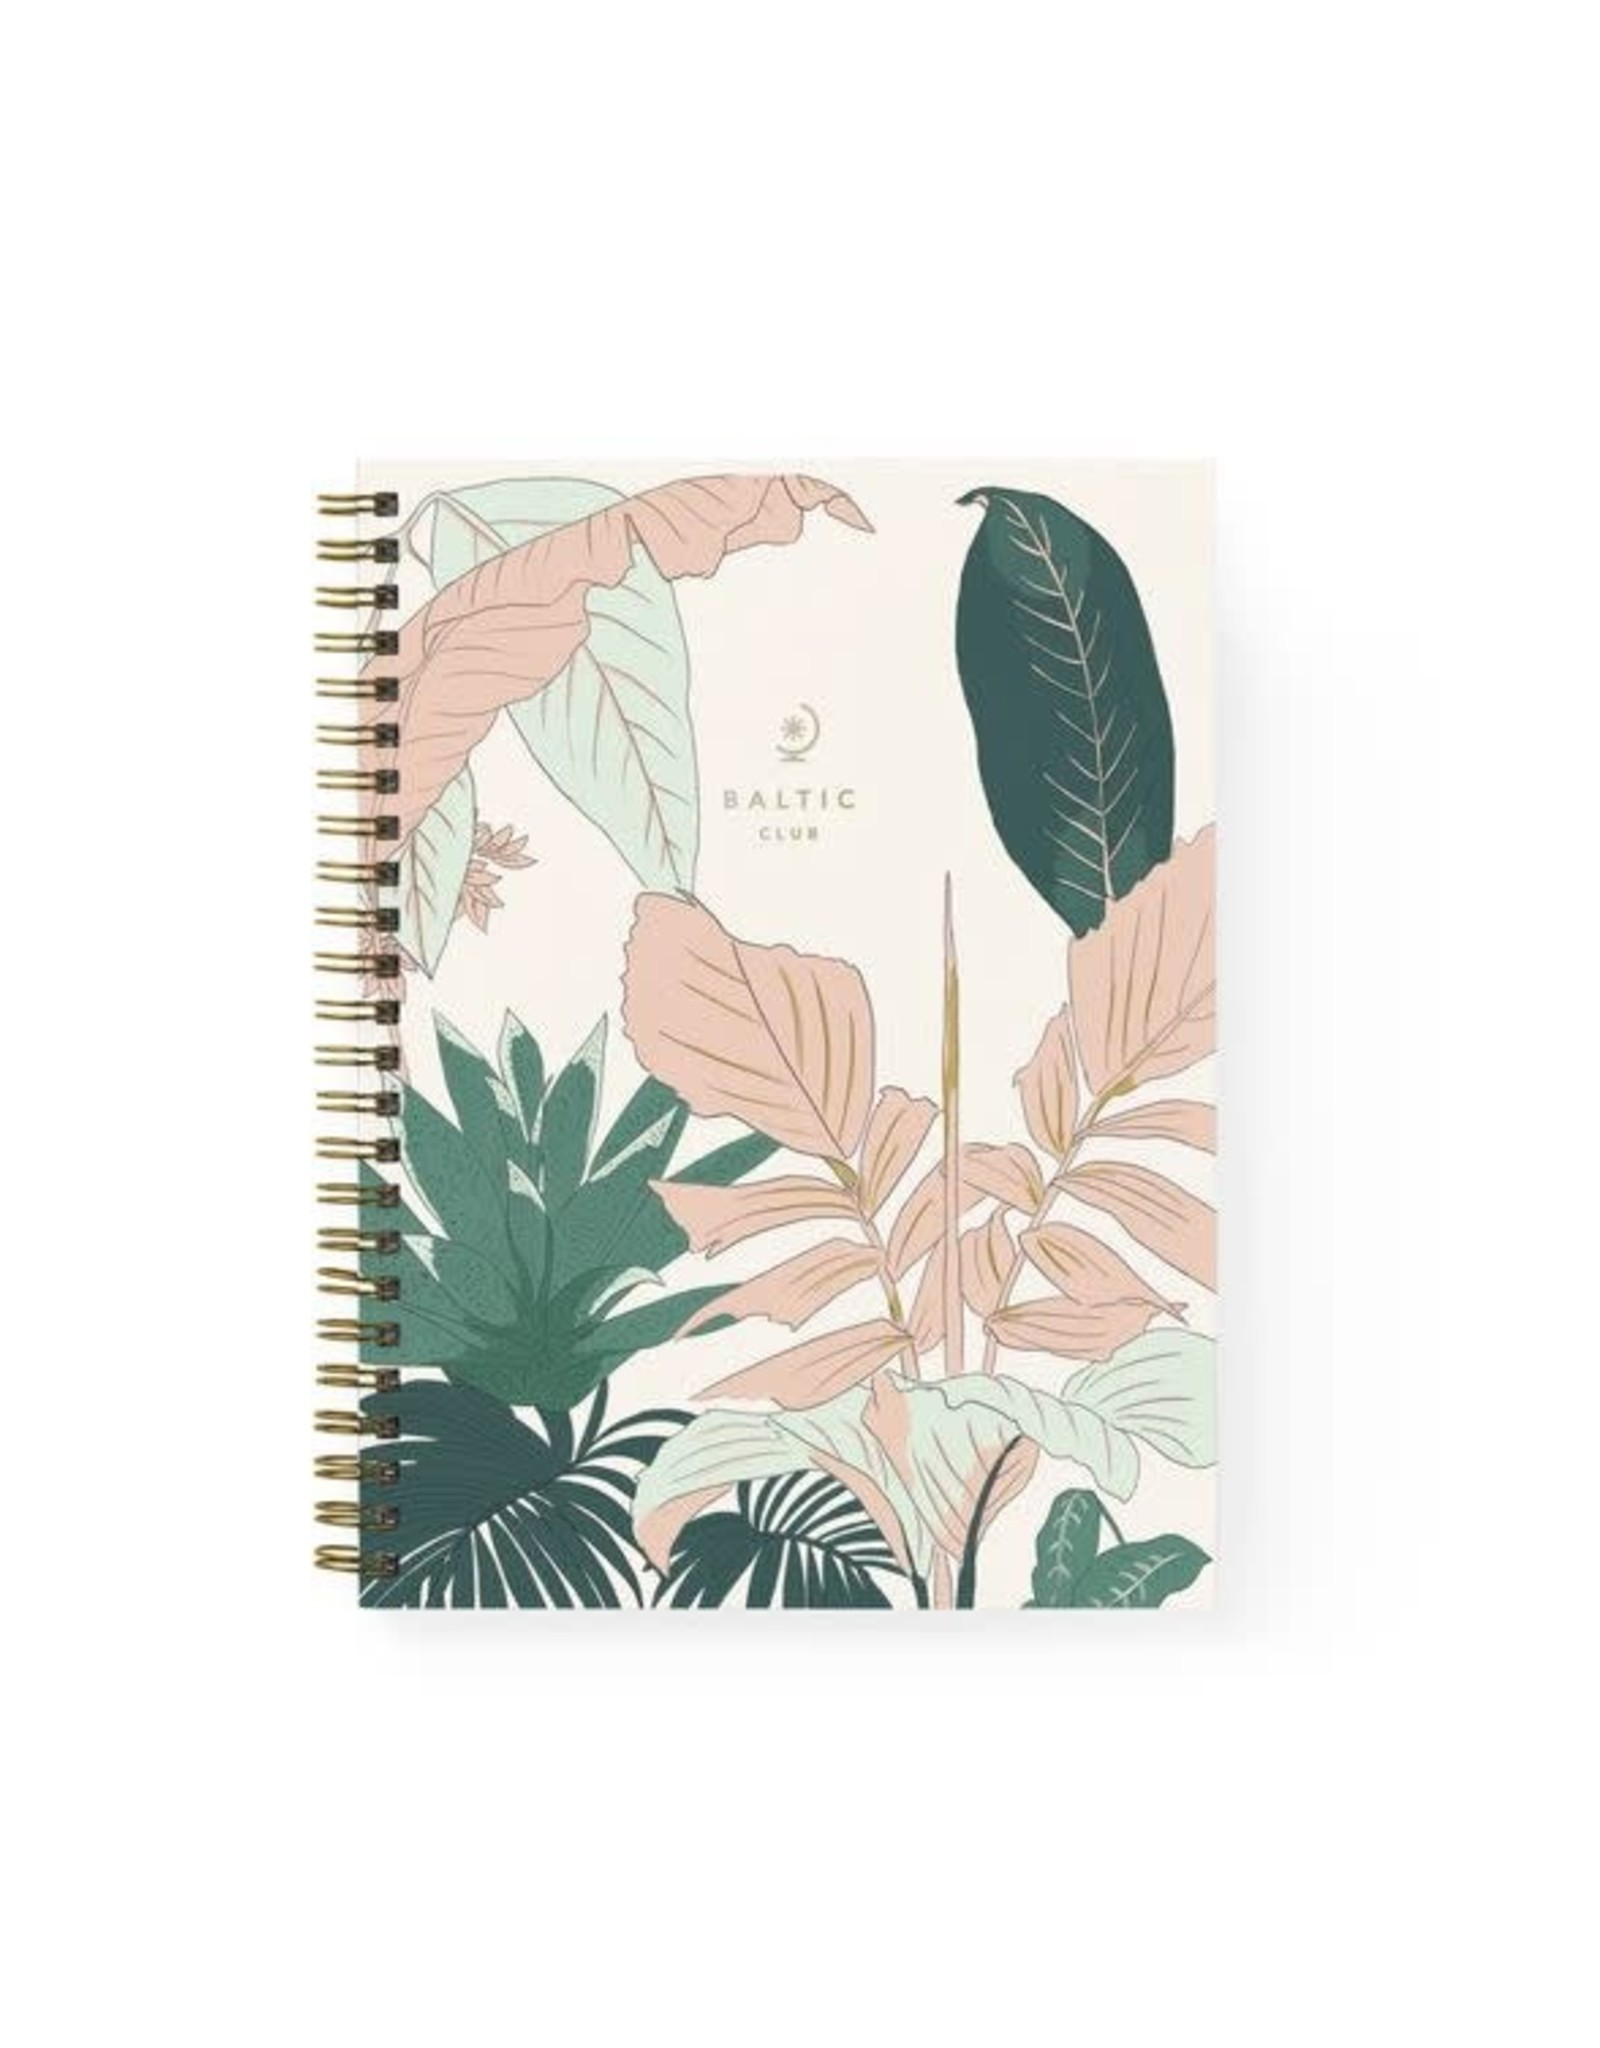 Baltic Club Florida Spiral Notebook - Blank Pages